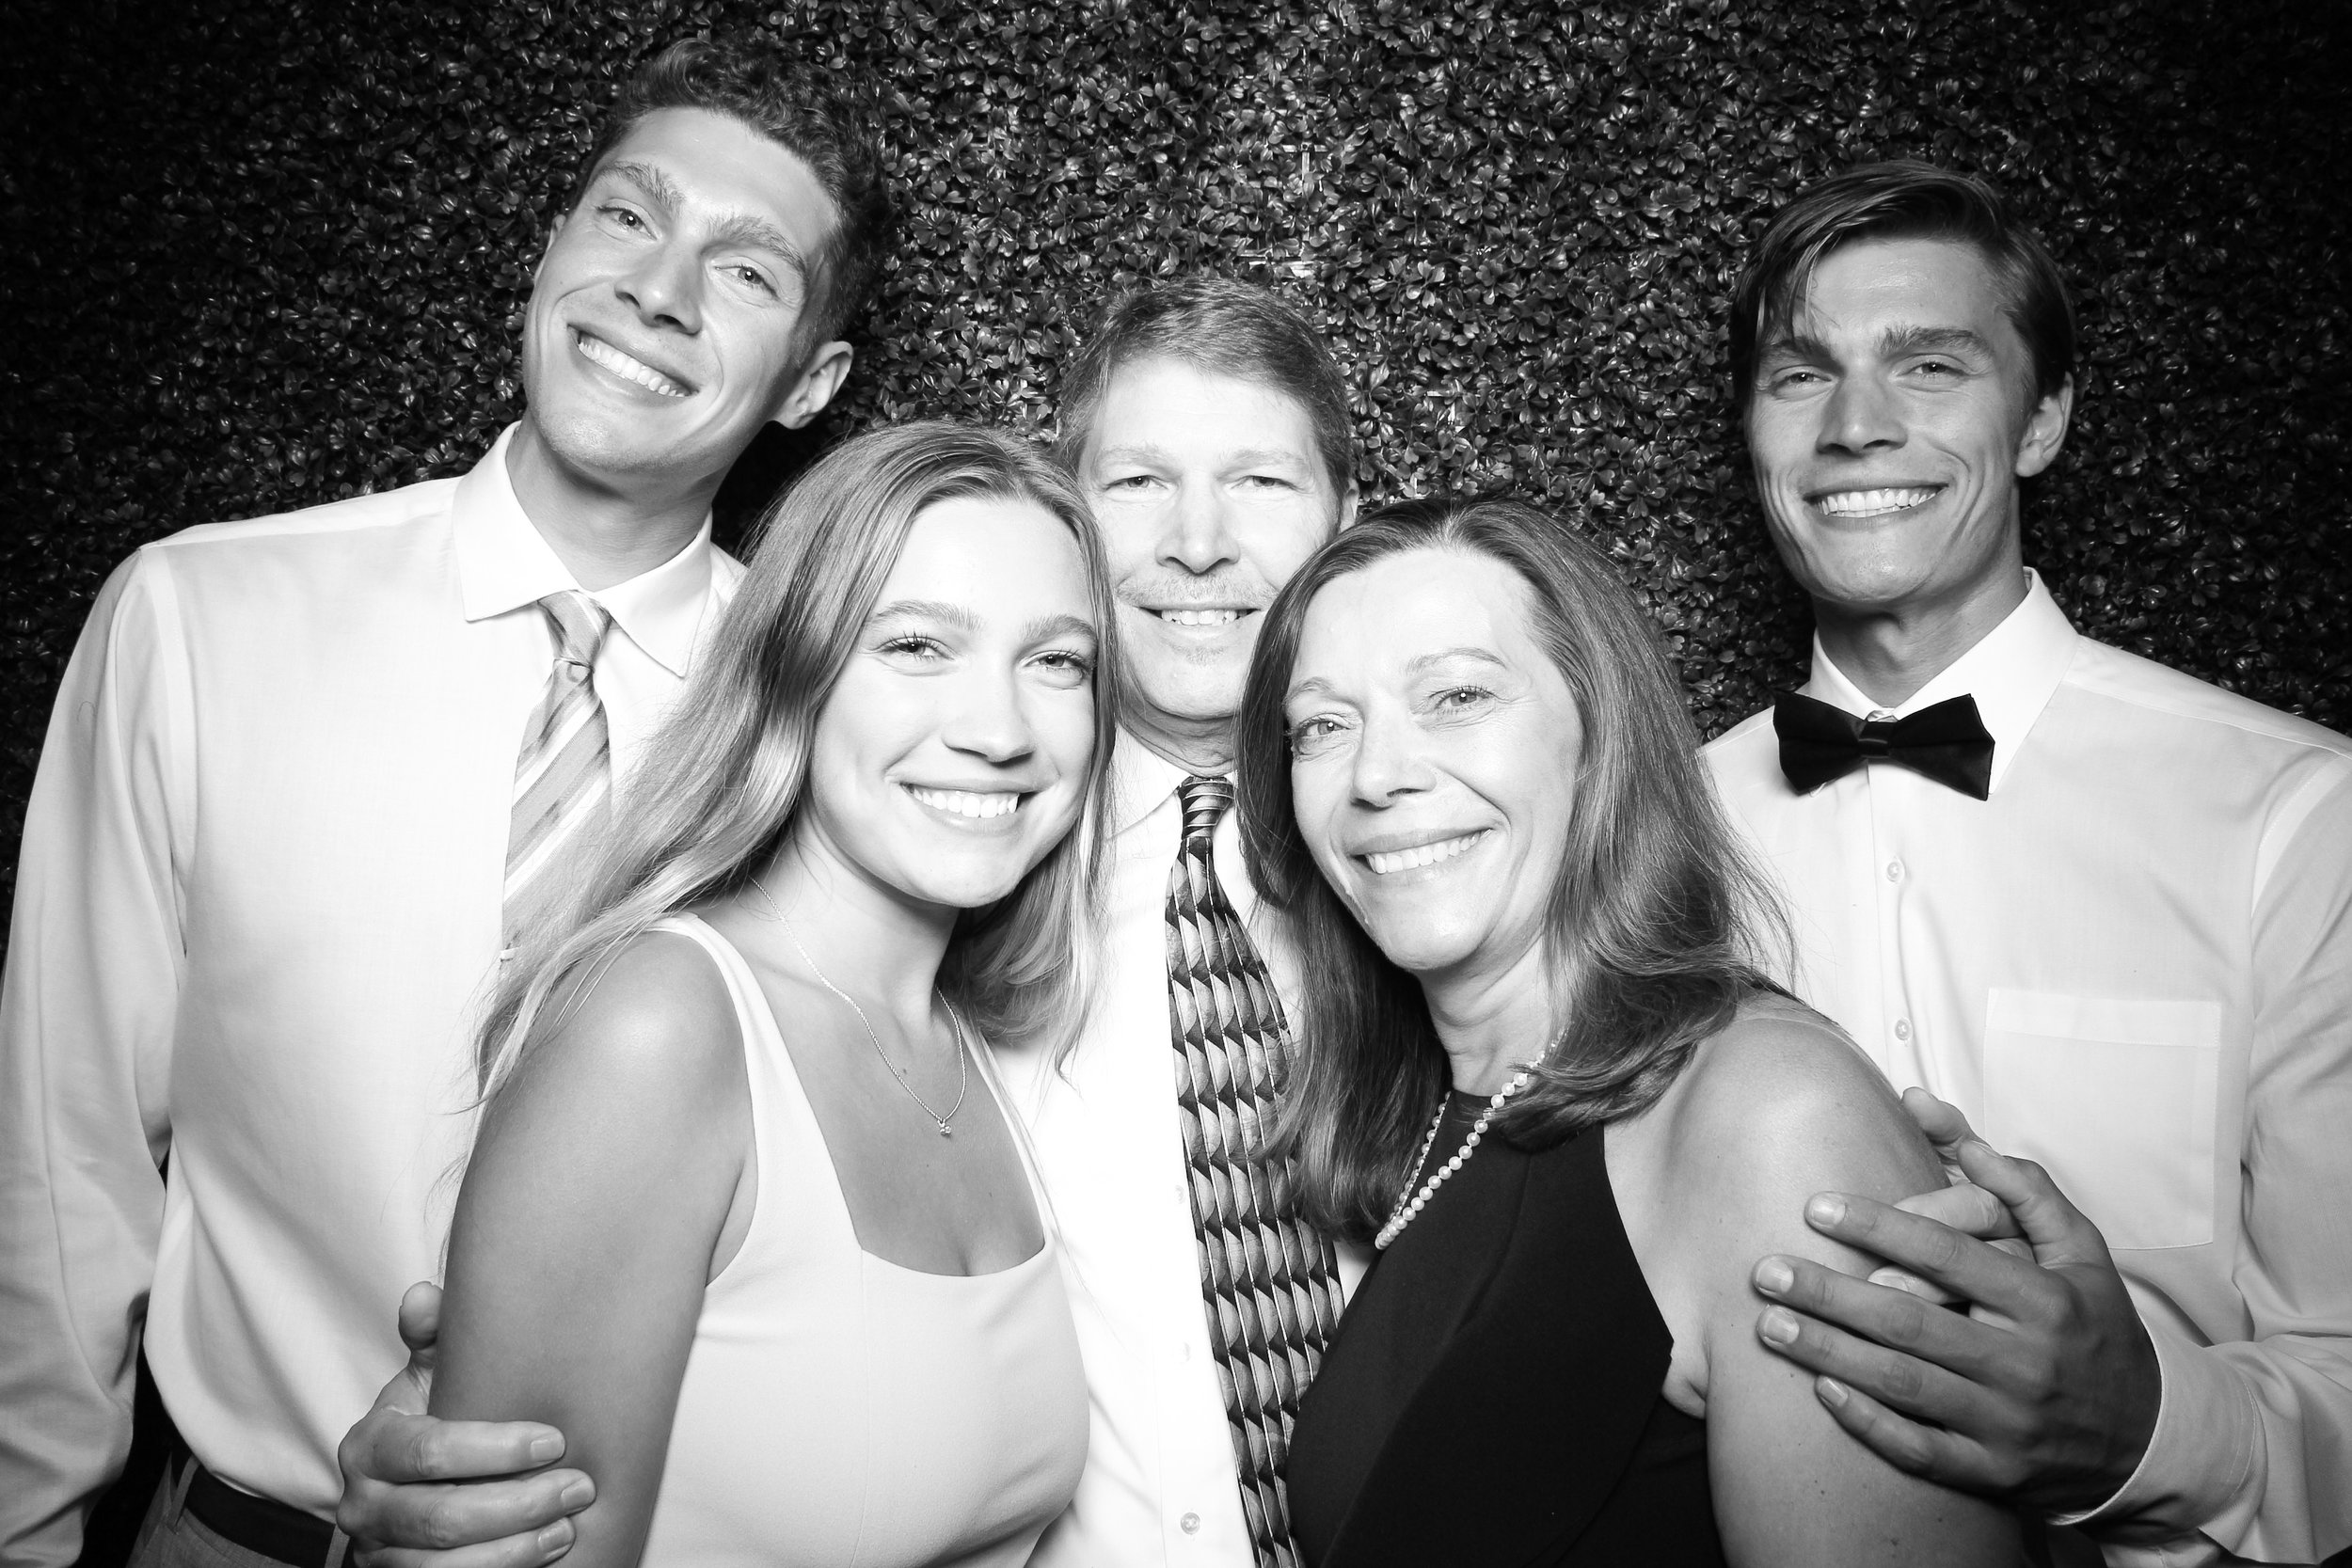 Ivy_Room_Chicago_Photo_Booth_Wedding_16.jpg